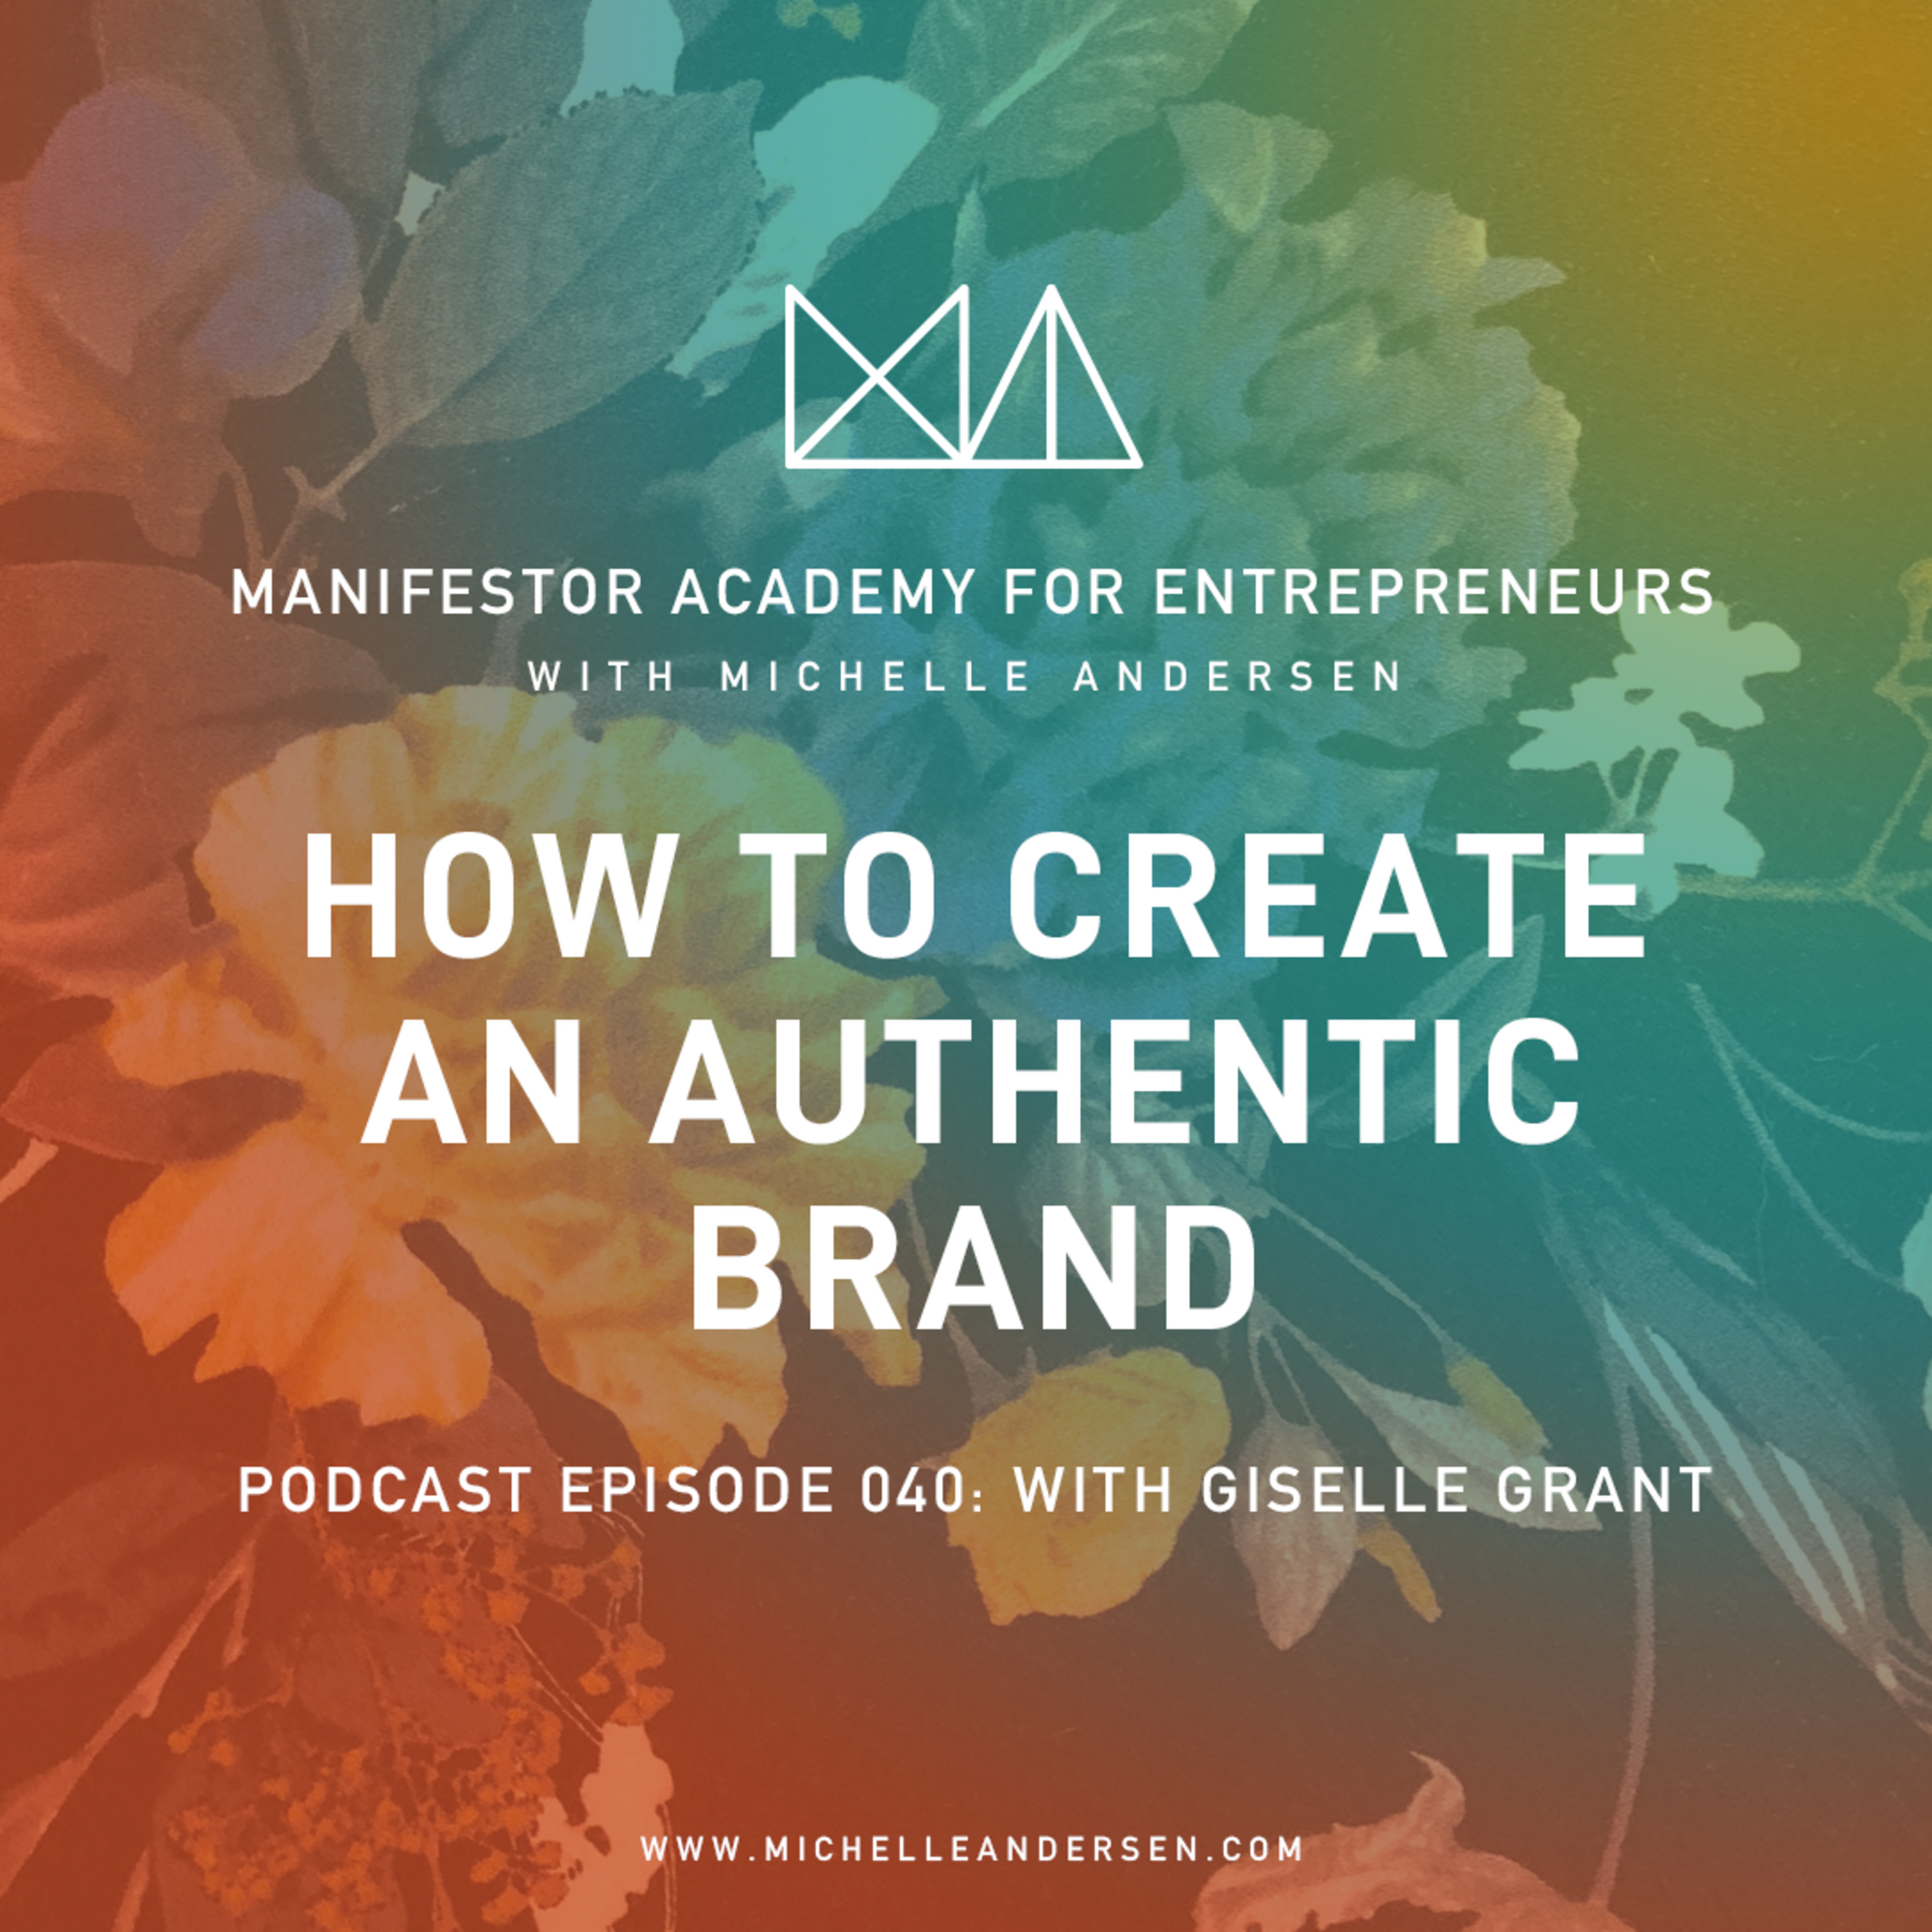 Giselle Grant on How To Create an Authentic Brand